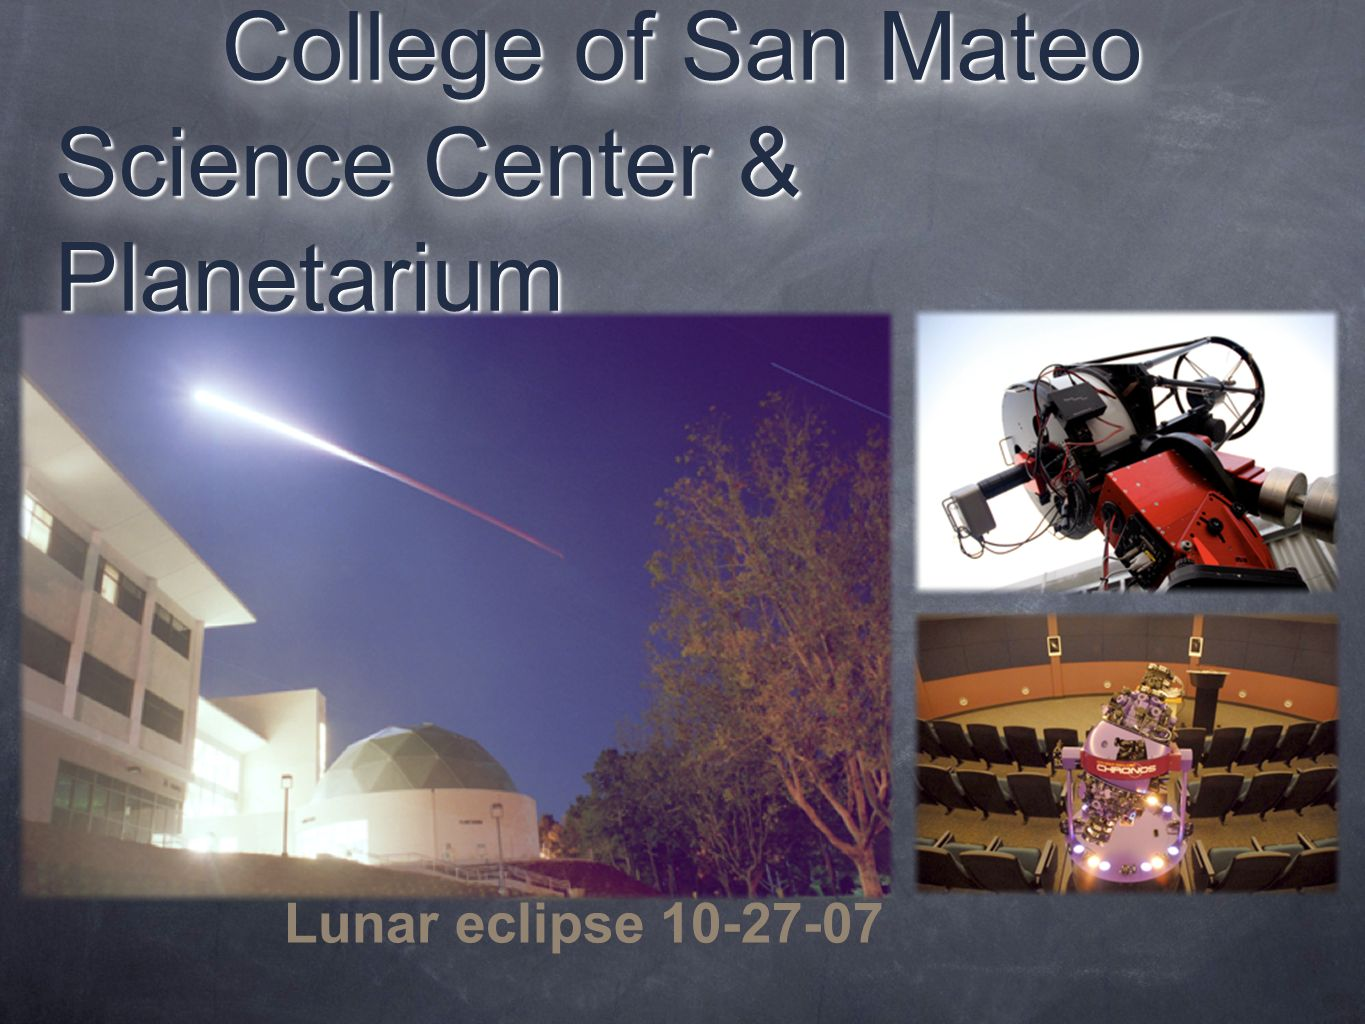 College of San Mateo Science Center & Planetarium College of San Mateo Science Center & Planetarium Lunar eclipse 10-27-07